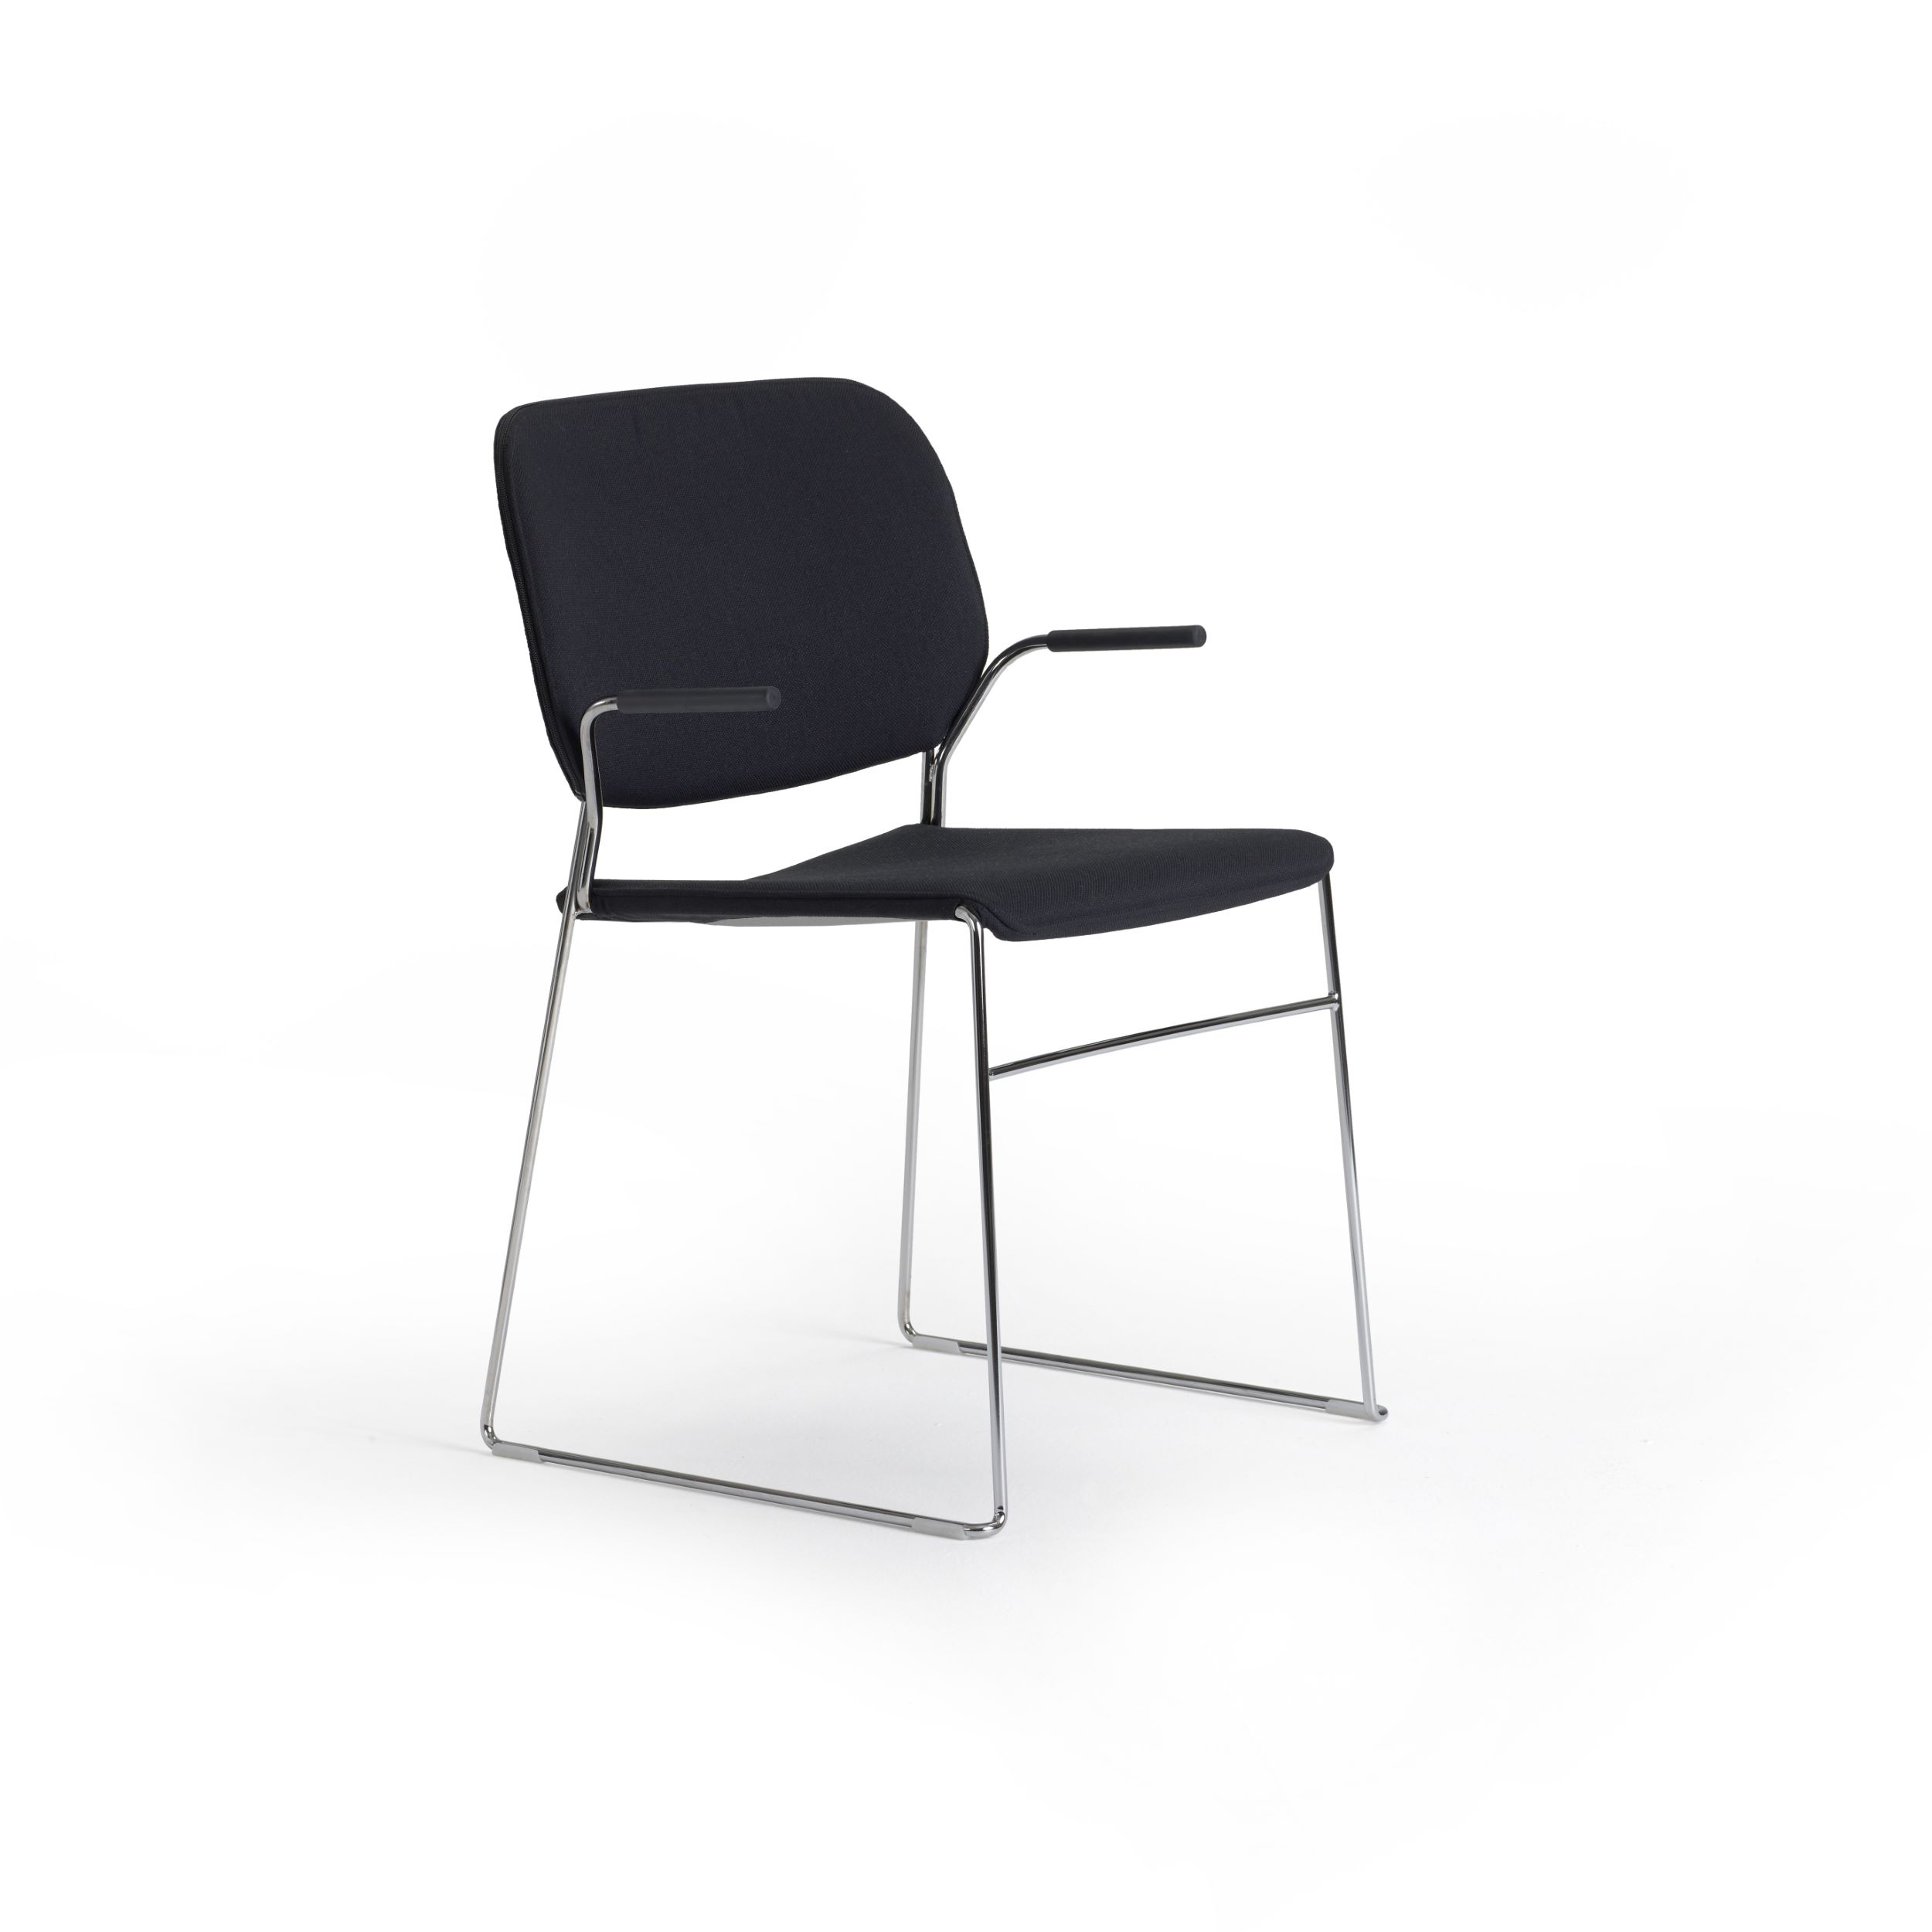 Lite, stackable armchair by Broberg & Ridderstråle